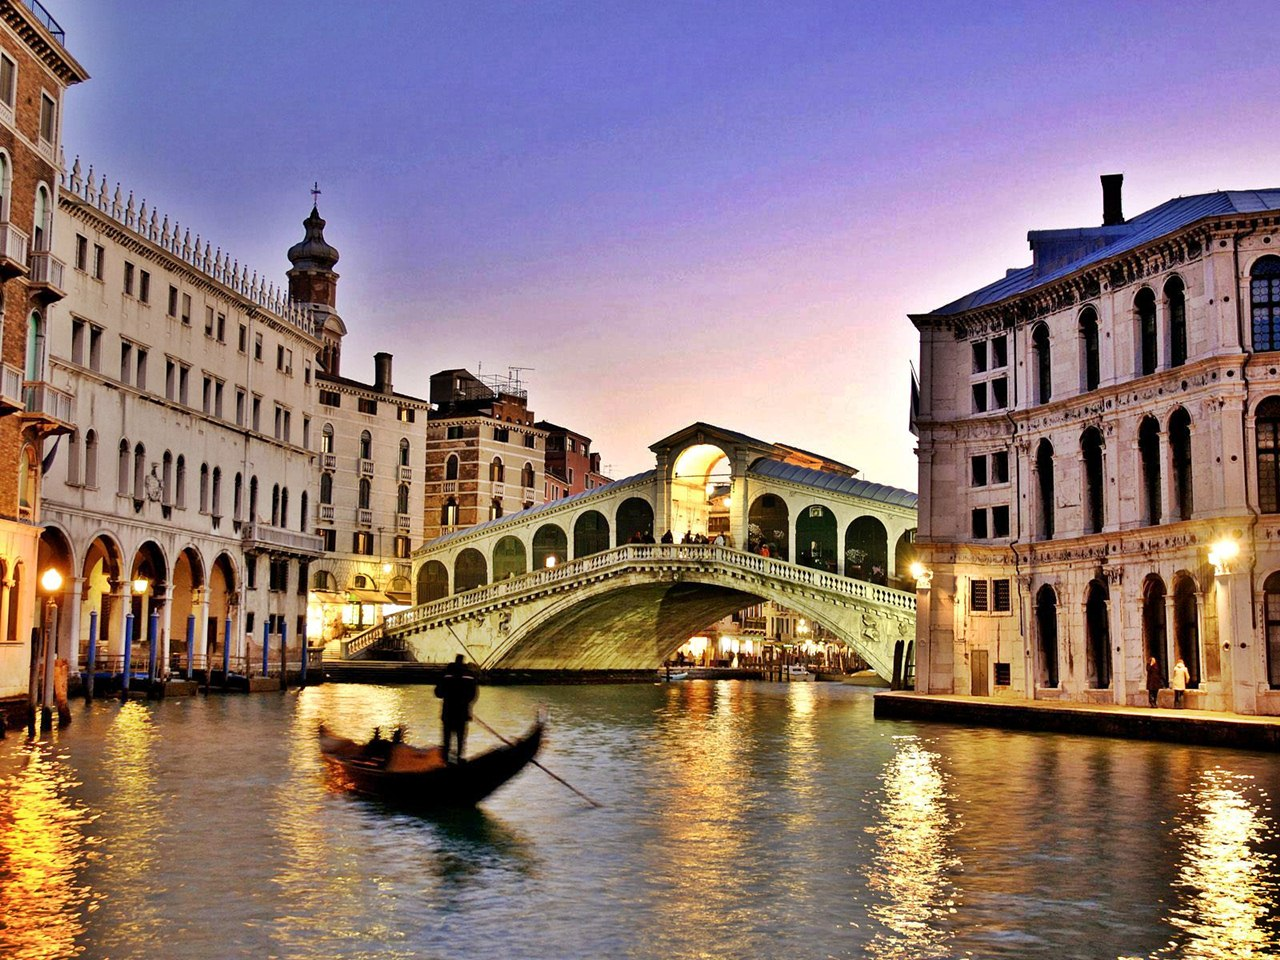 ITALY, one of the best holiday spots of Europe and a lot of attractions to cover. The best part was the cleanliness throughout (except for the Venice ...